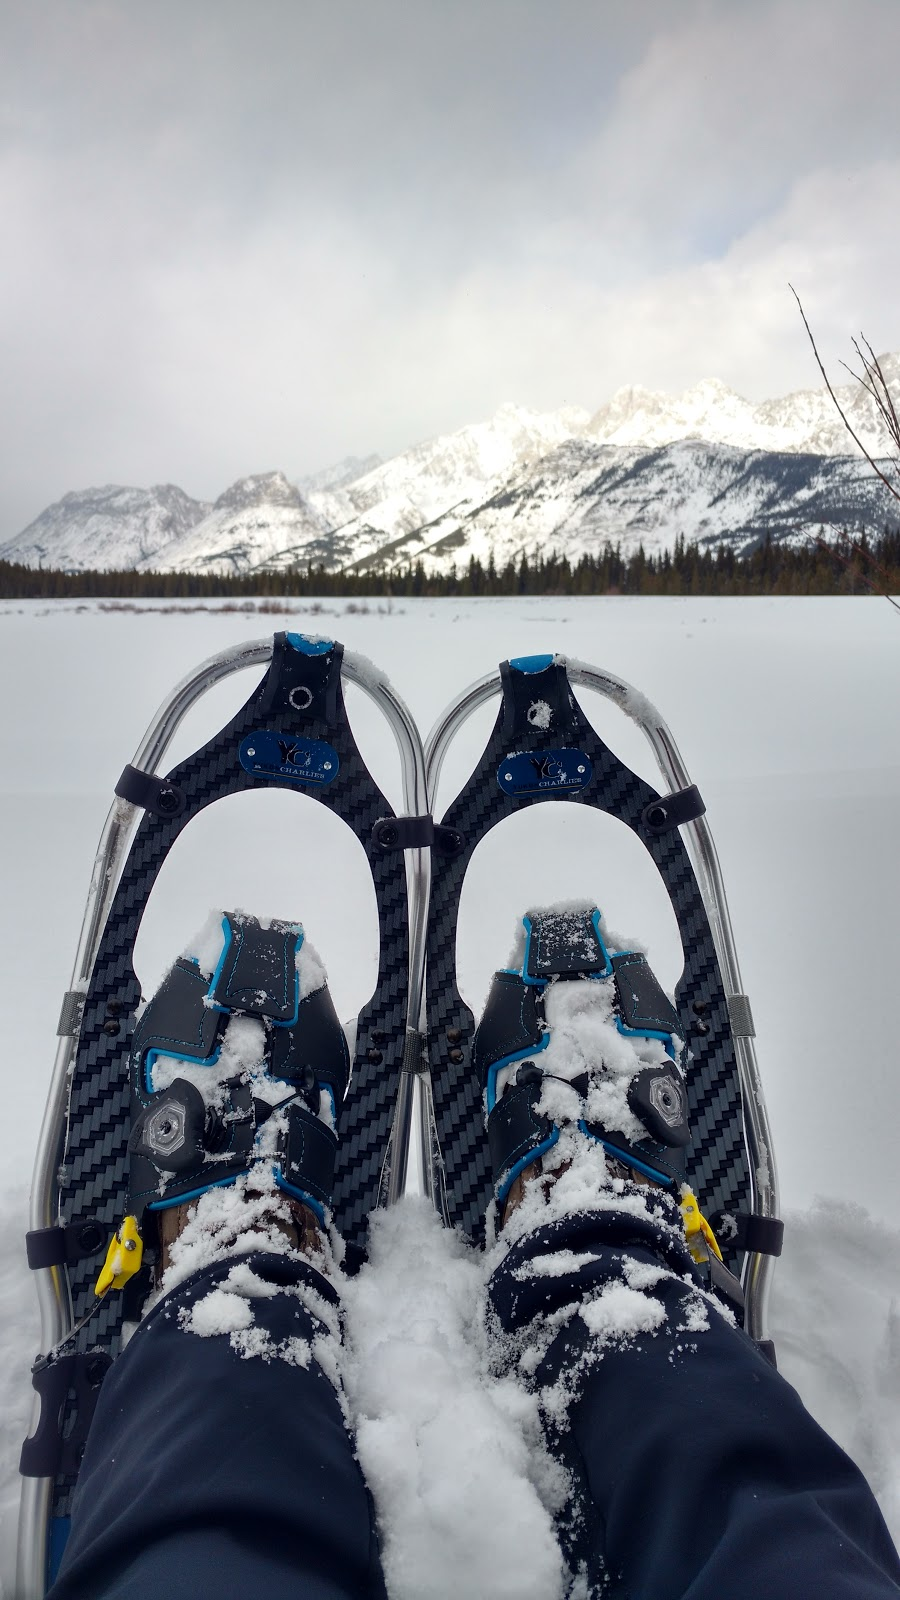 Yukon Charlie's Elite SPIN Snowshoes: Review And Giveaway